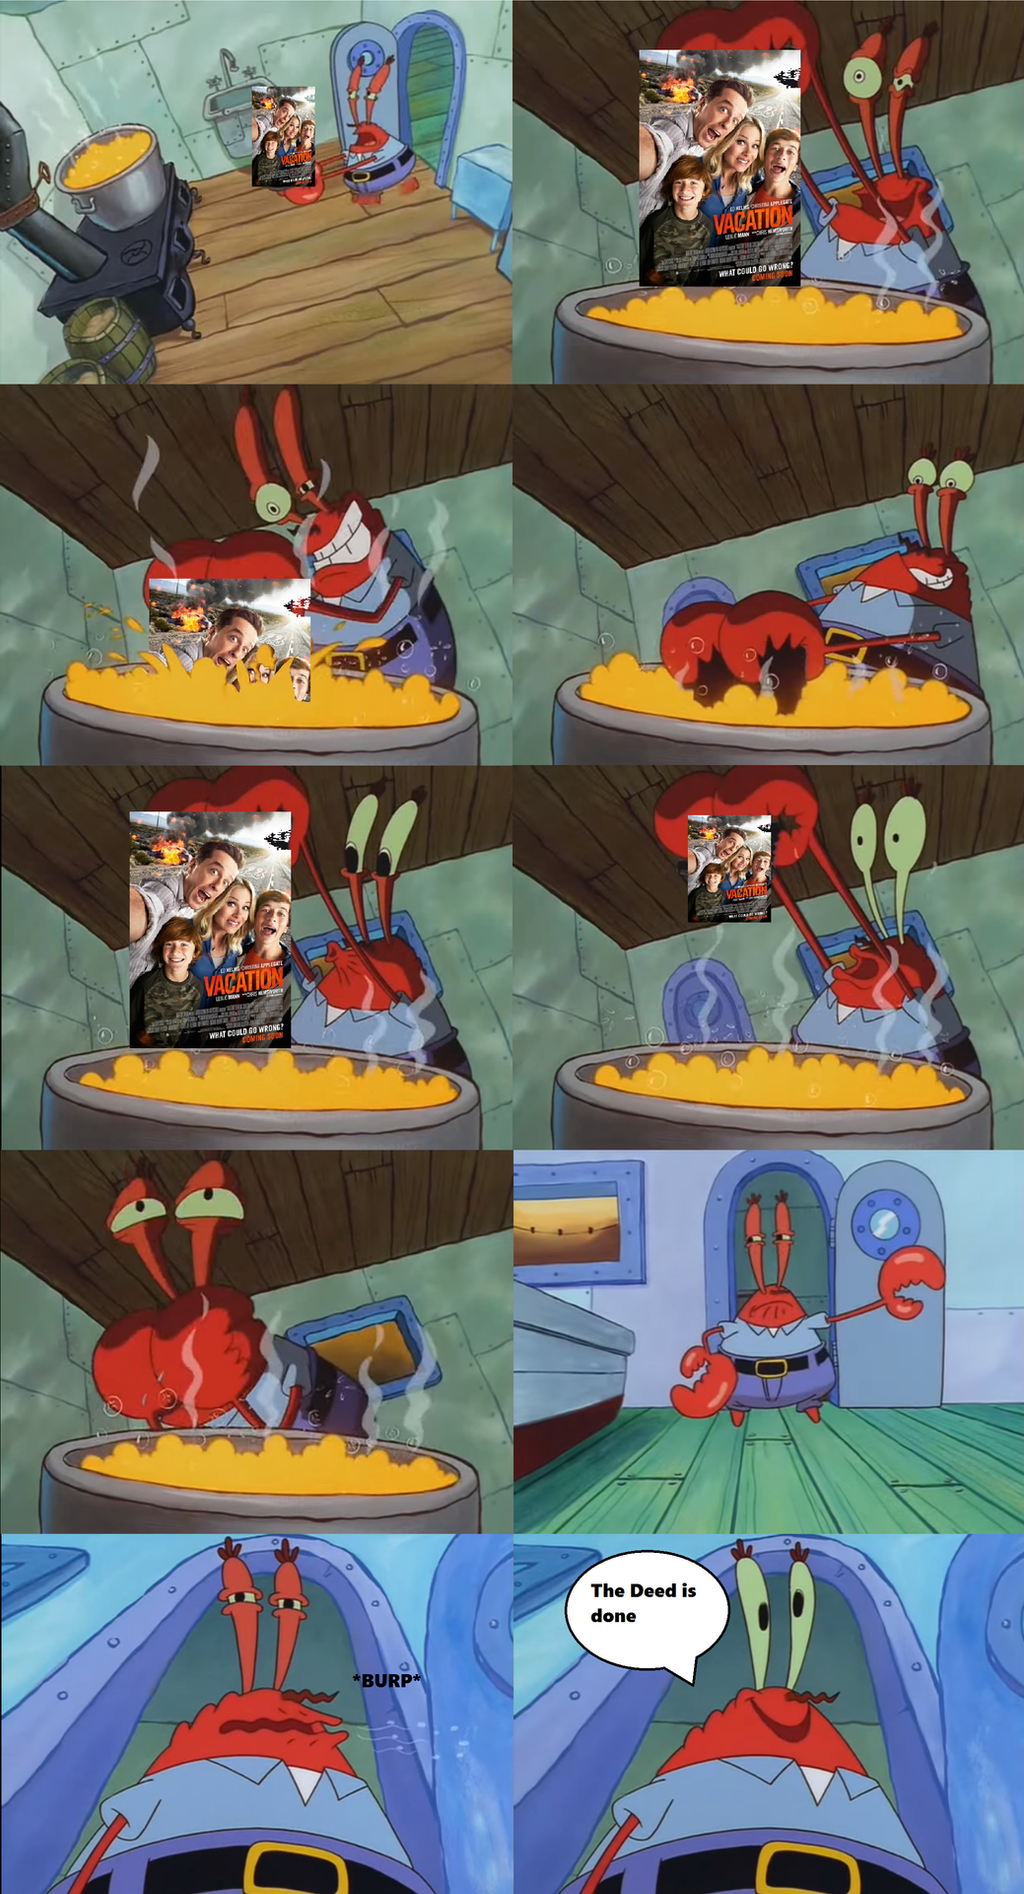 mr krabs reaction to vacation 2015 by cyothelion on deviantart